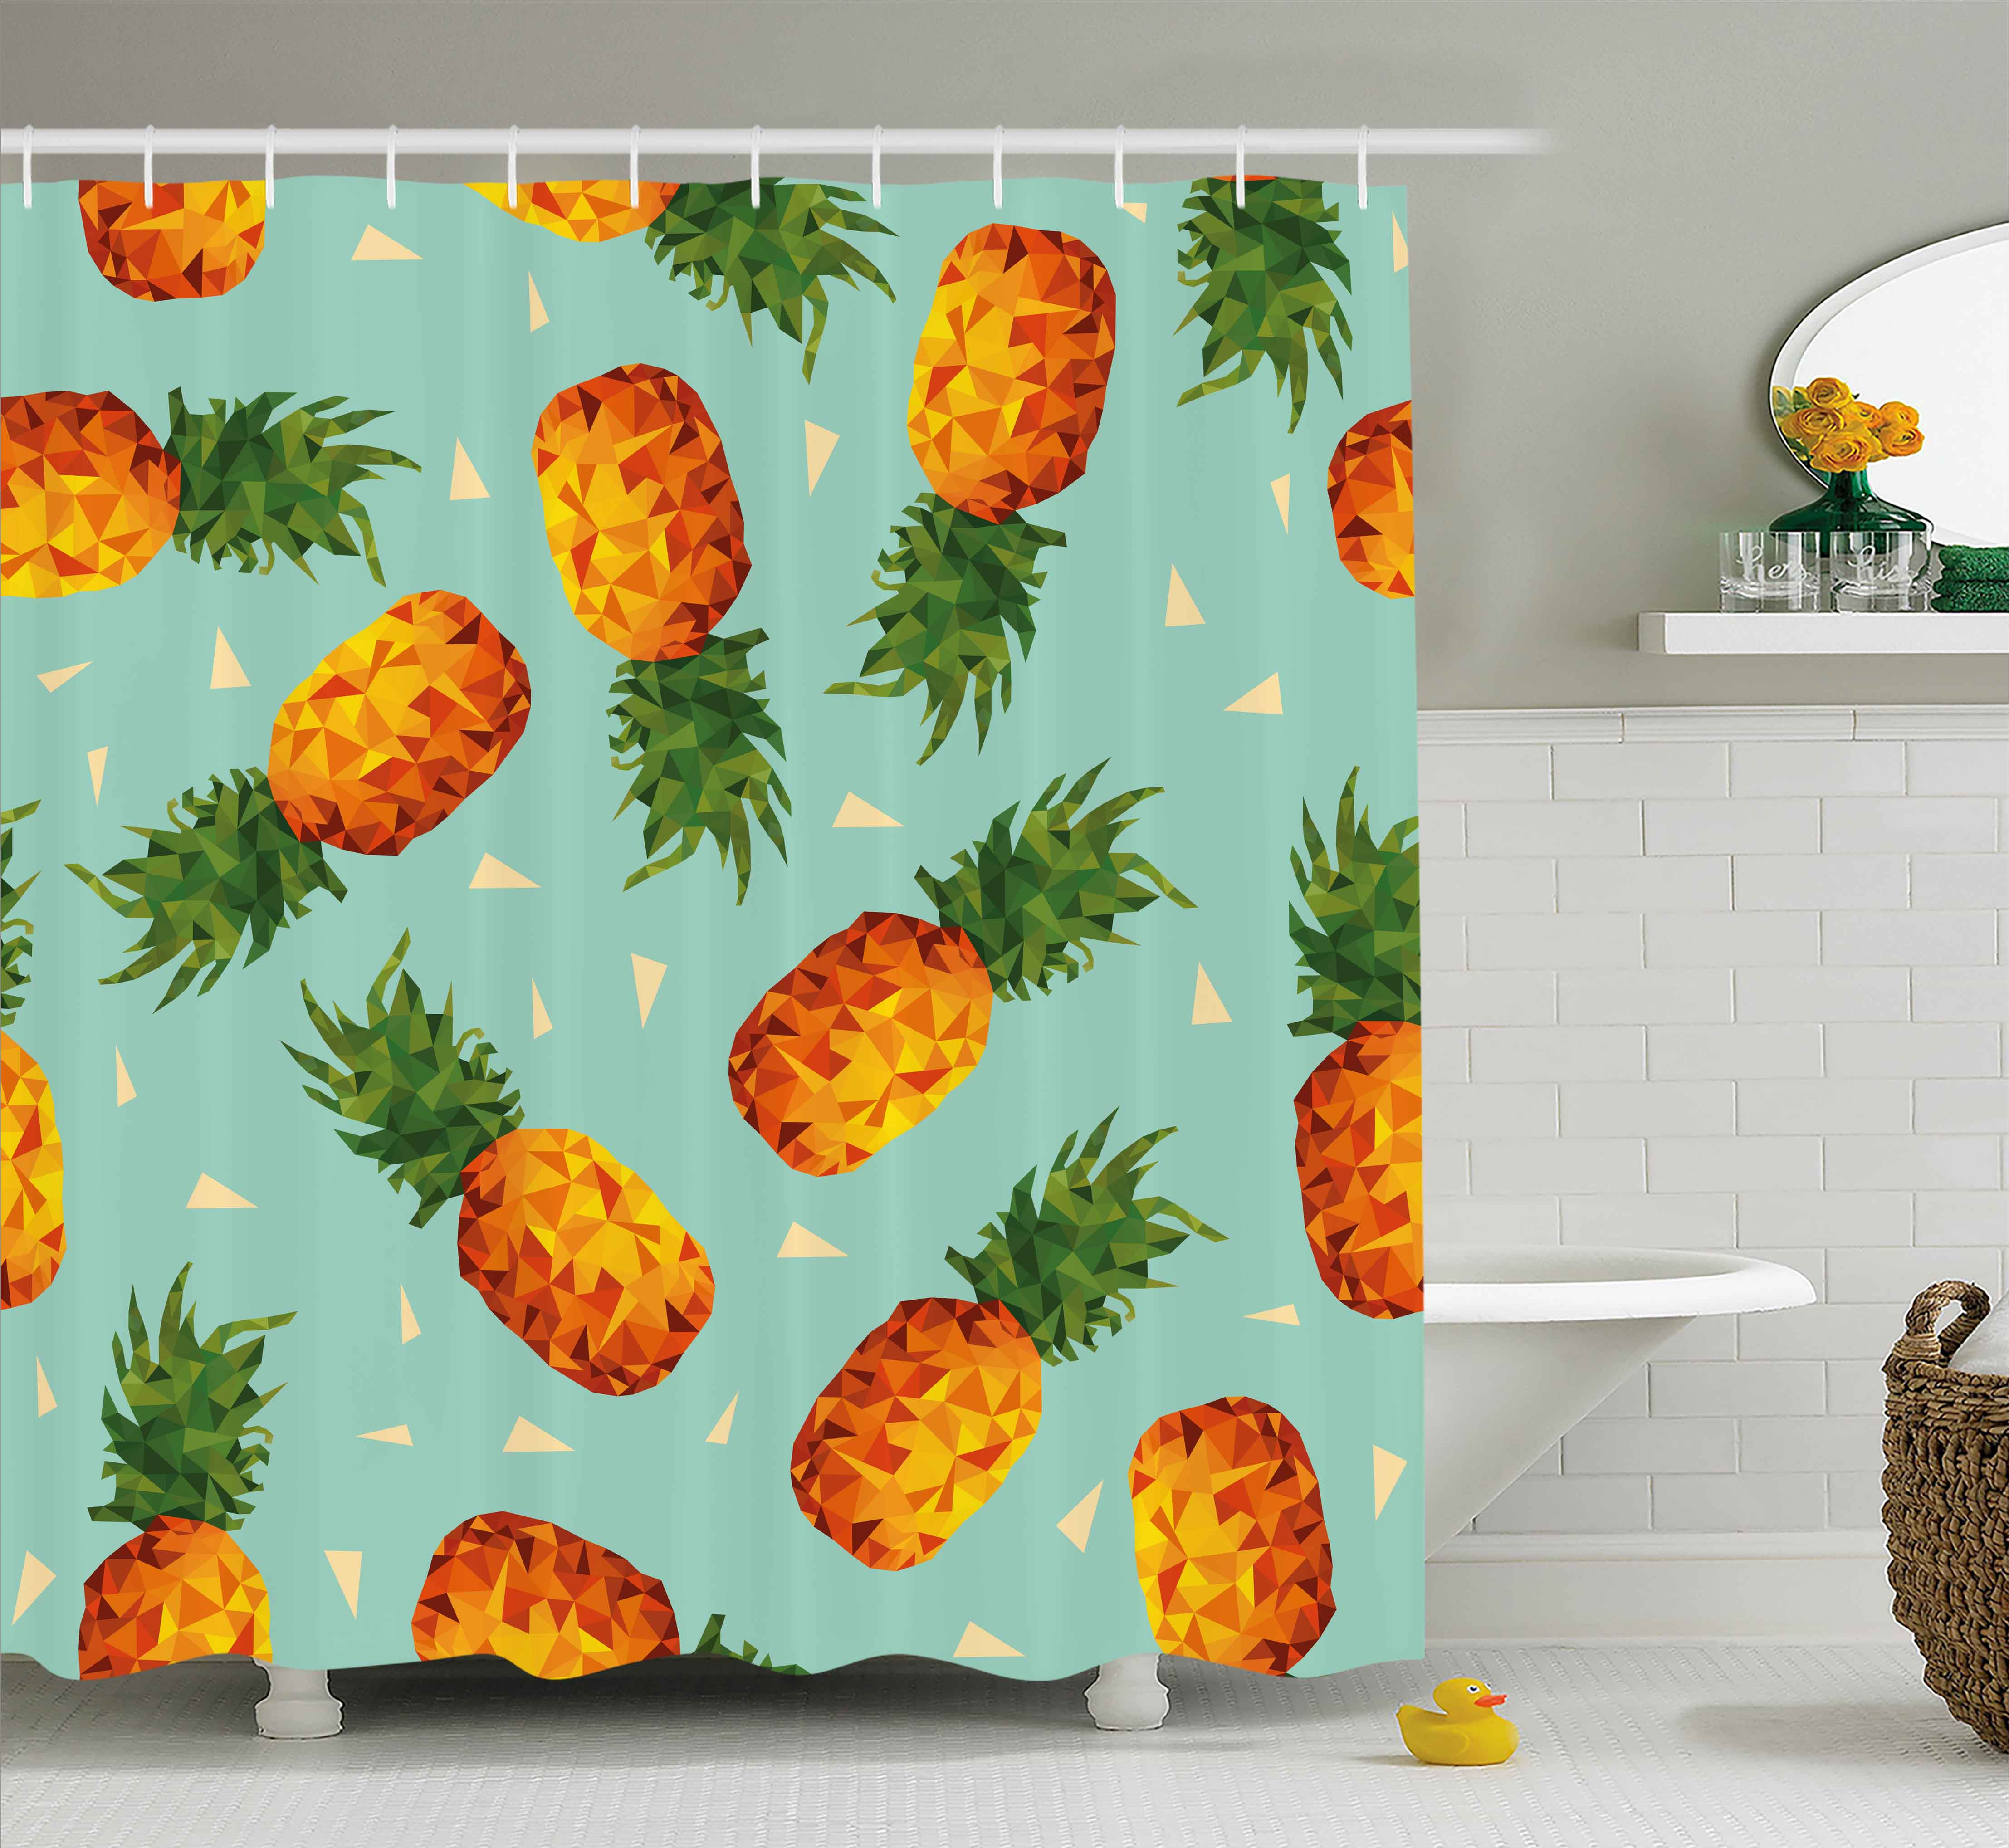 Retro Shower Curtain, Poly Style Pineapples Motif Vintage Beach Summer Modern Illustration, Fabric Bathroom Set with Hooks, 69W X 84L Inches Extra Long, Seafoam Olive Green Orange, by Ambesonne